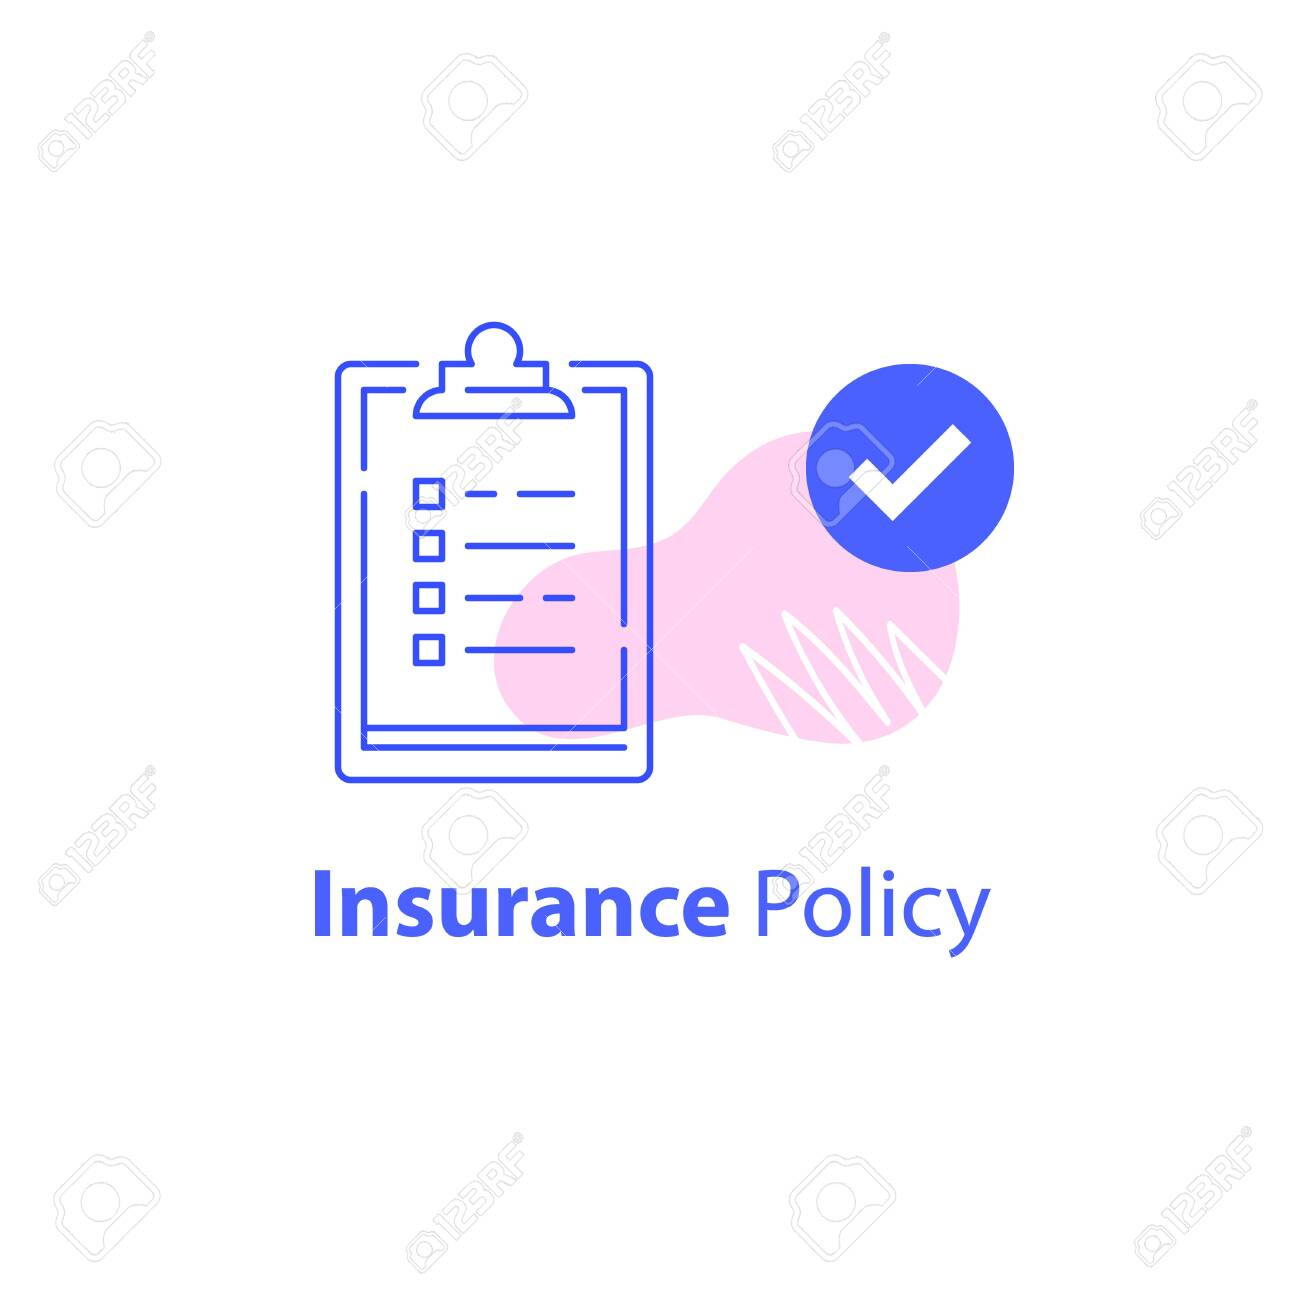 Check list, insurance services, accept policy change, contract paperwork, terms and conditions, fast questionnaire, quick survey, opinion pol or sociology, vector line icon - 143063351